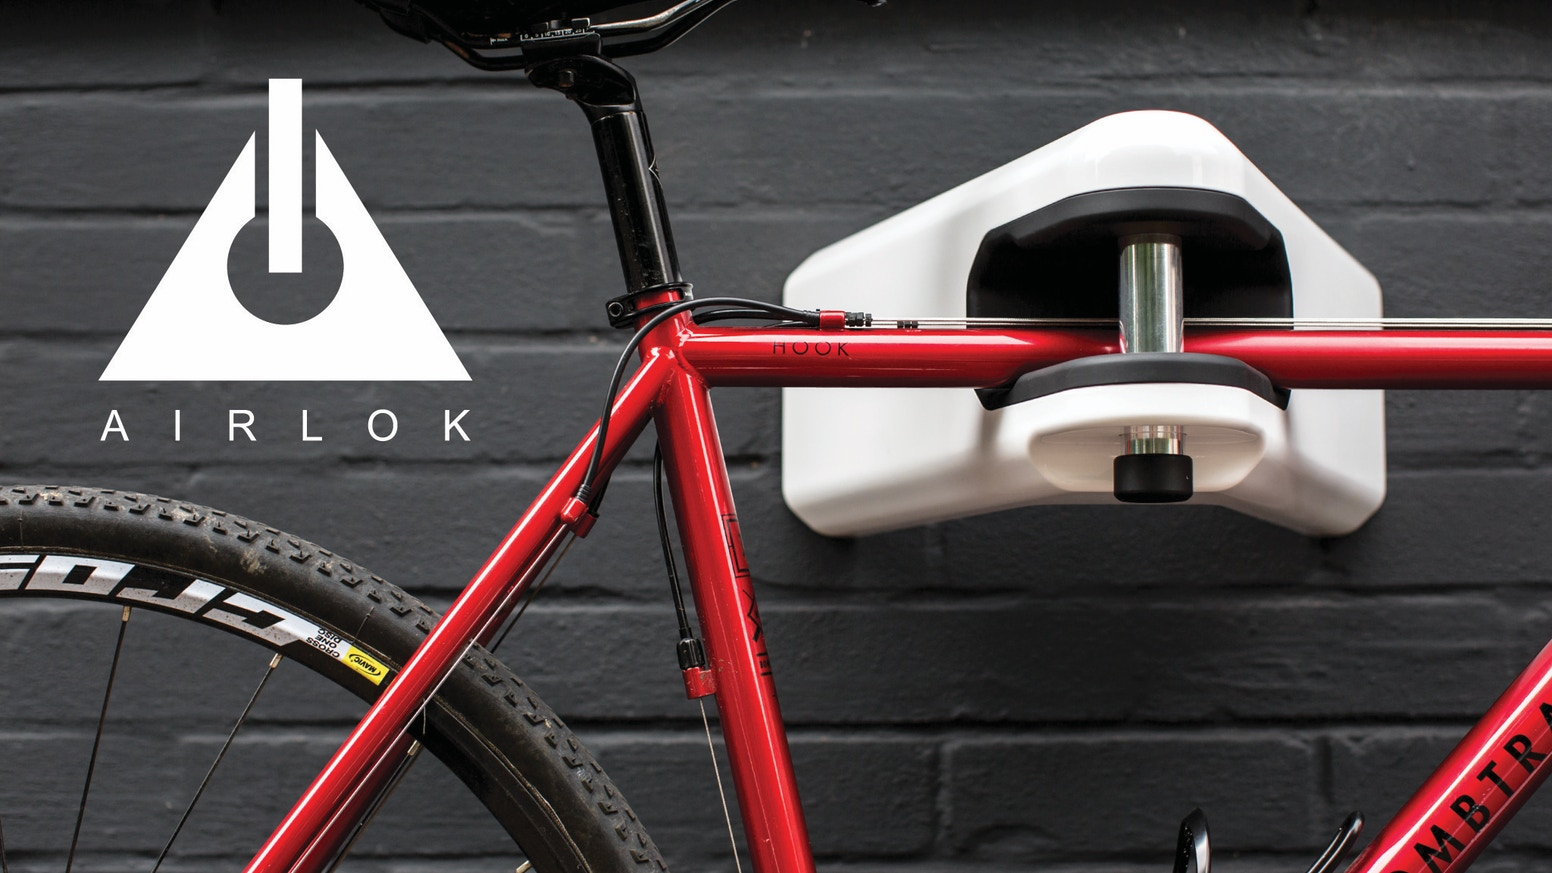 The world's first high security bike storage hanger. Ultimate bicycle protection and storage, indoors or outside.